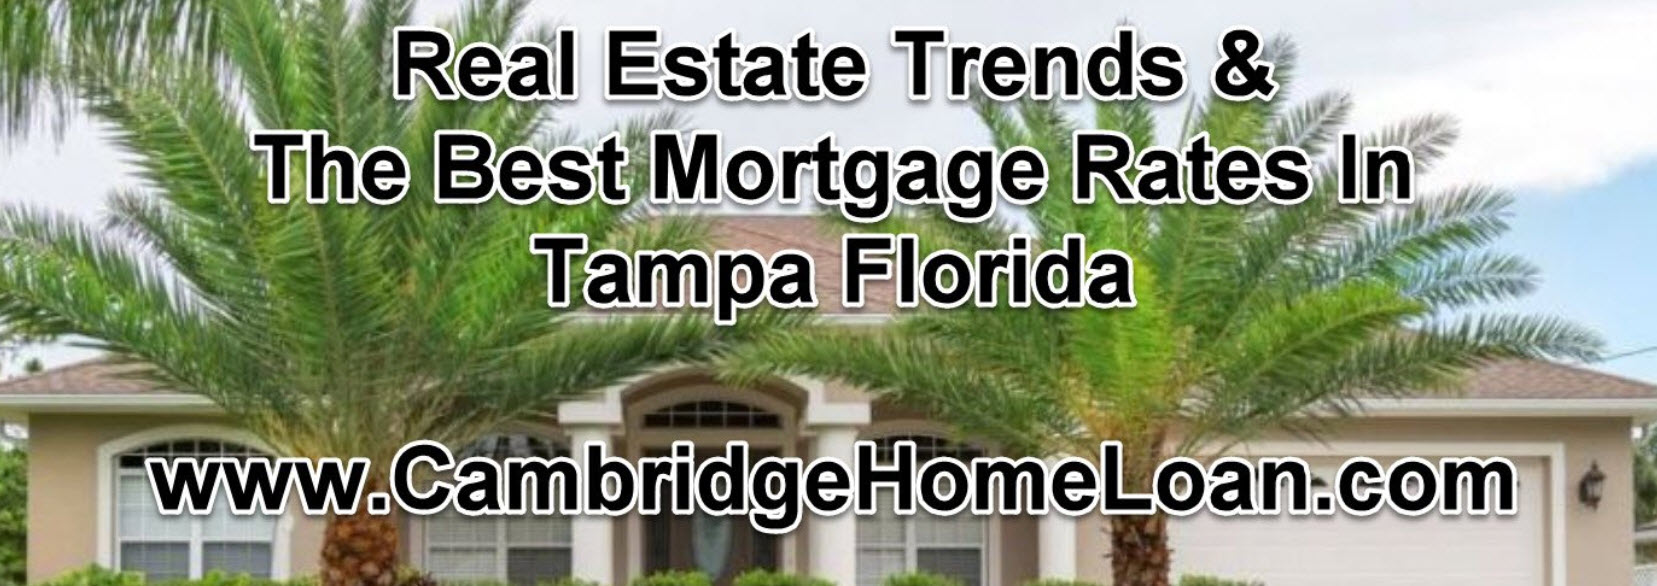 best mortgage rate tampa florida